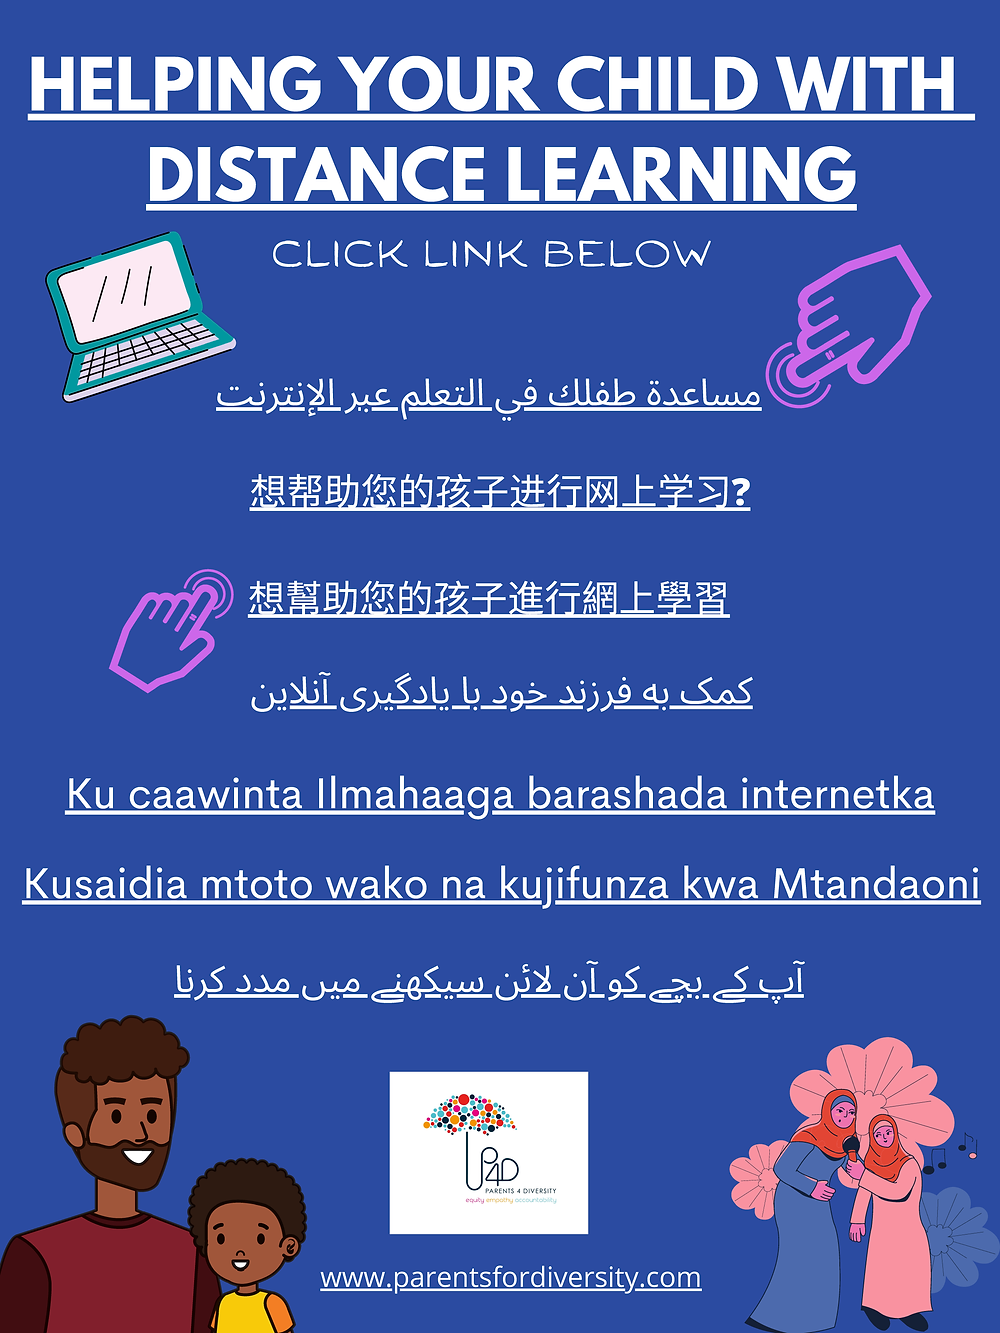 "A blue rectangle with the text ""Helping Your Child With Distance Learning"" Click Link Below. Eight links in Arabic, Simplified Chinese, Chinese, Farsi/Persian, Somali, Swahili, and Urdu and then listed in order, with the P4D umbrella logo and graphics of adults and children at the bottom"